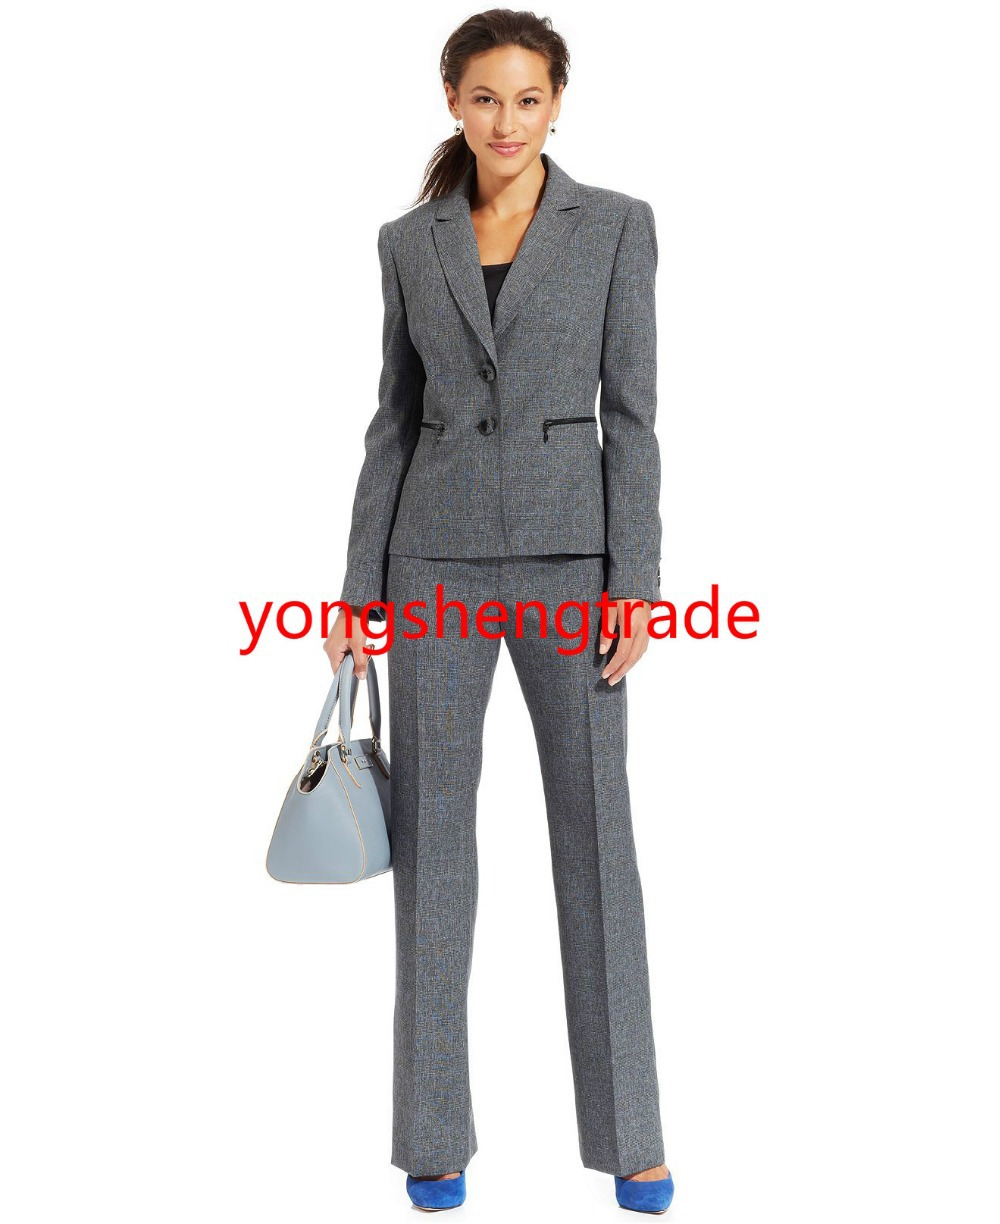 Brand Gray Custom Made Suit Notched Collar Zip Pockets Jacket Mid Rise Straight Fit Pants Full Lined 732